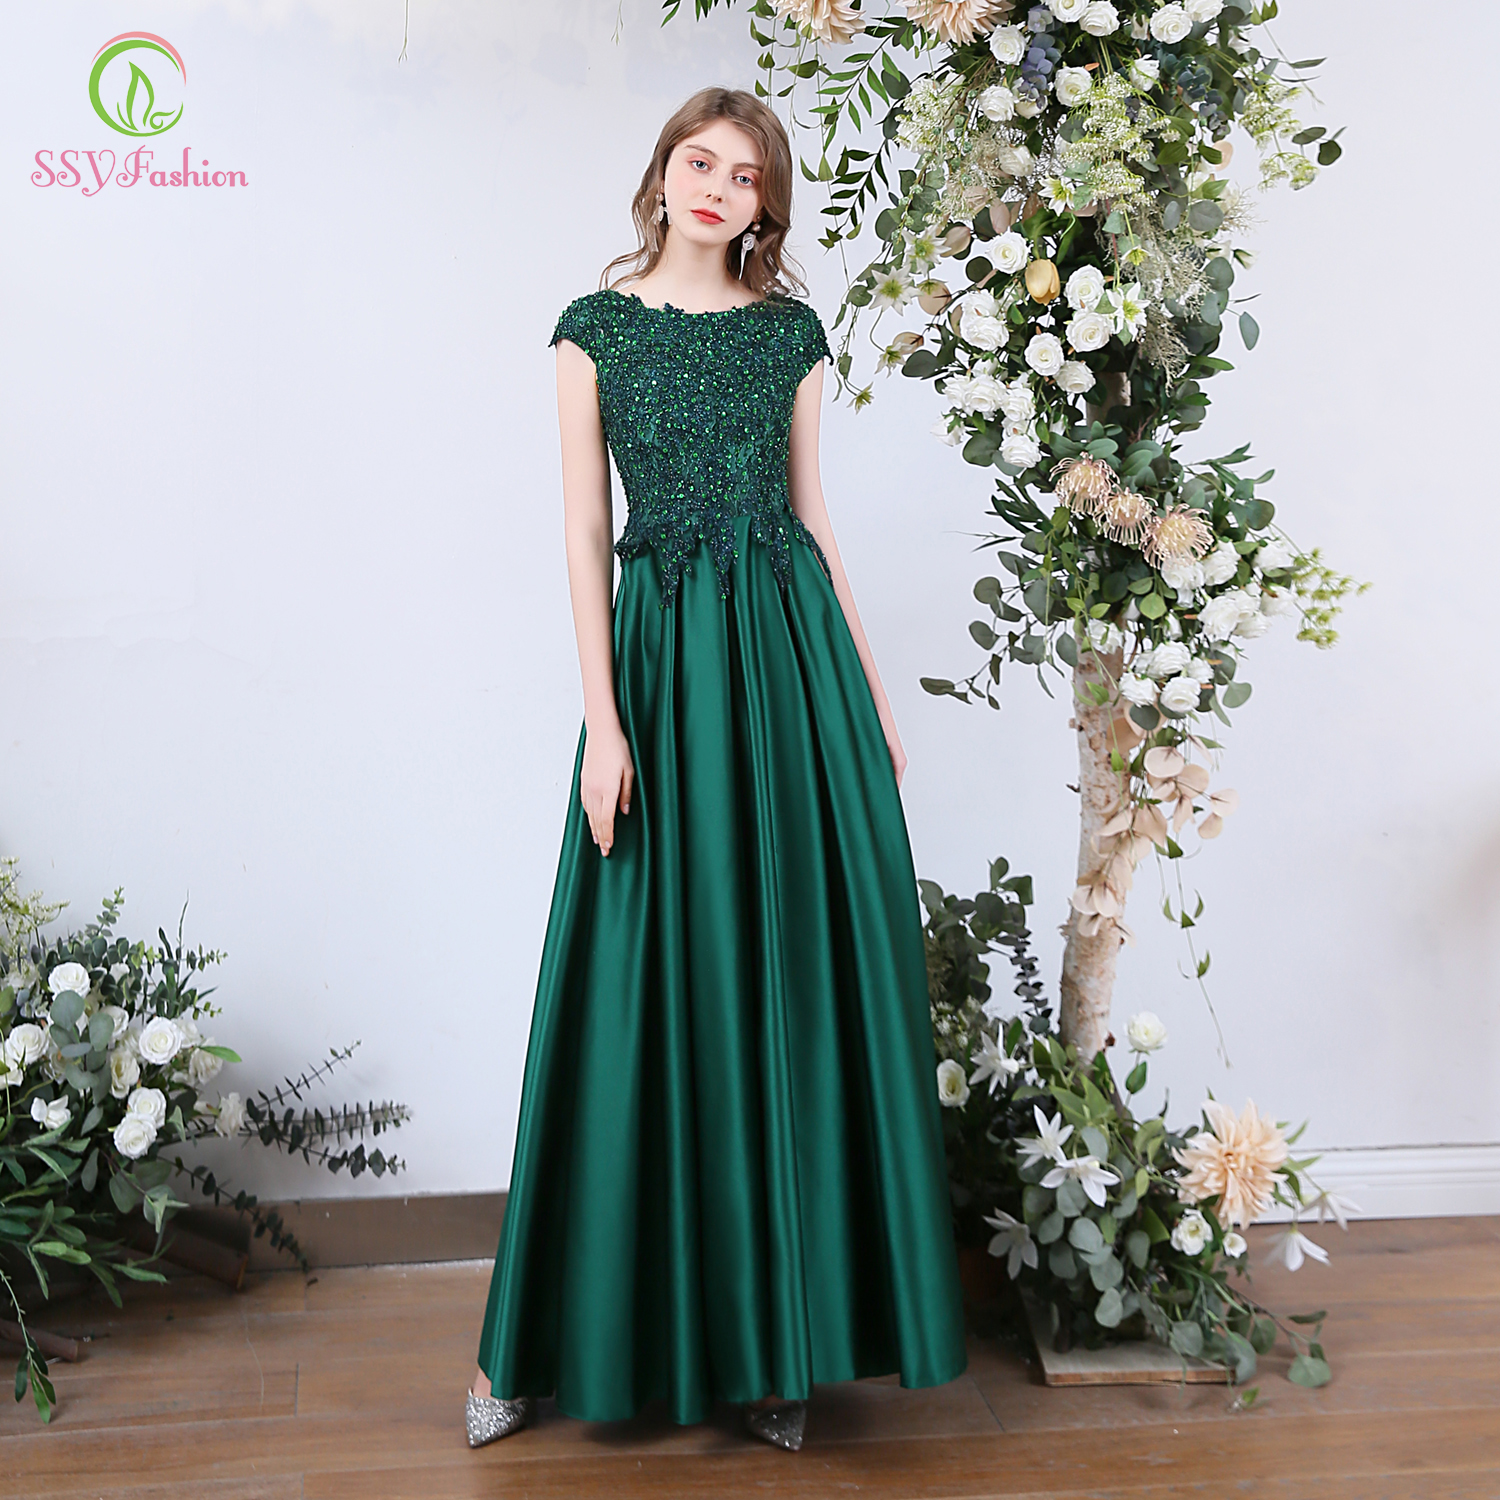 SSYFashion New Luxury Evening Dress Banquet Elegant Green Satin Lace Sequins Long Formal Party Gowns Special Occasion Dresses